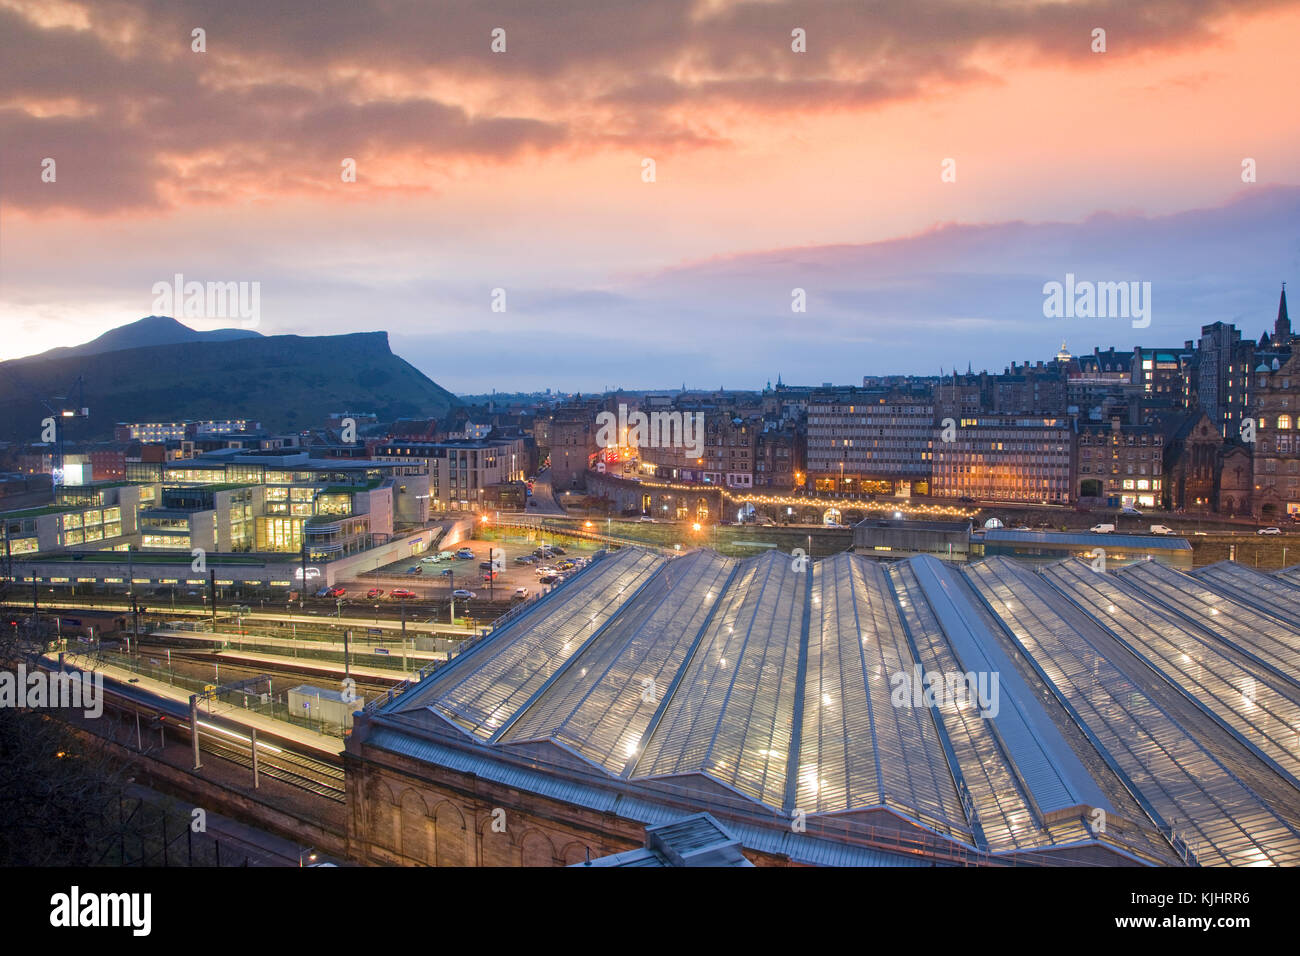 Dawn over Waverley Station, Edinburgh, Lothain - Stock Image